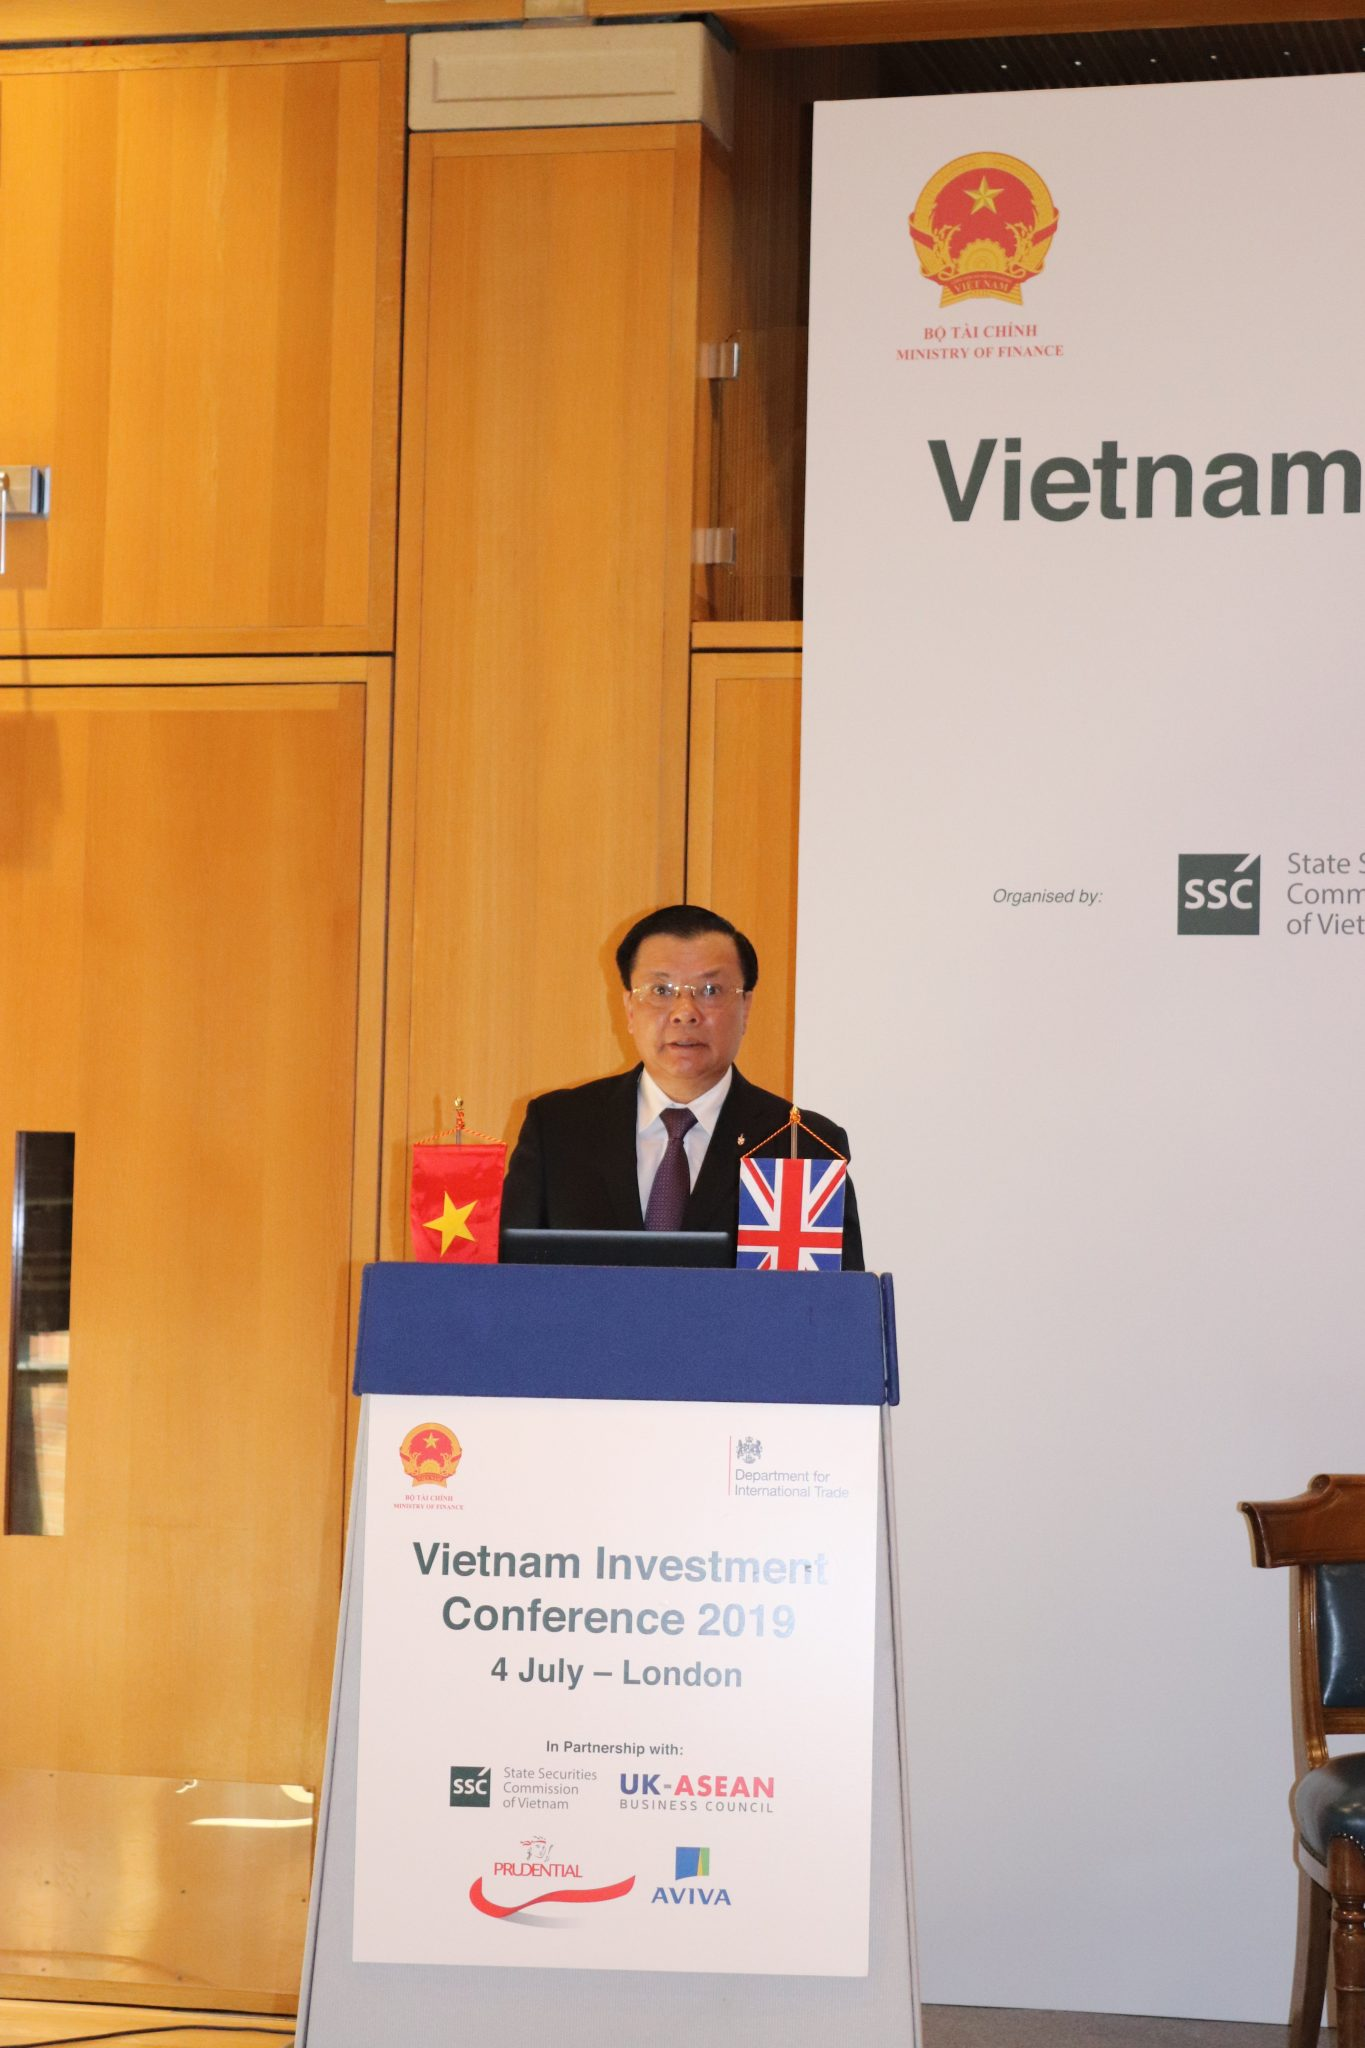 Vietnam Investment Conference 2019 - UKABC